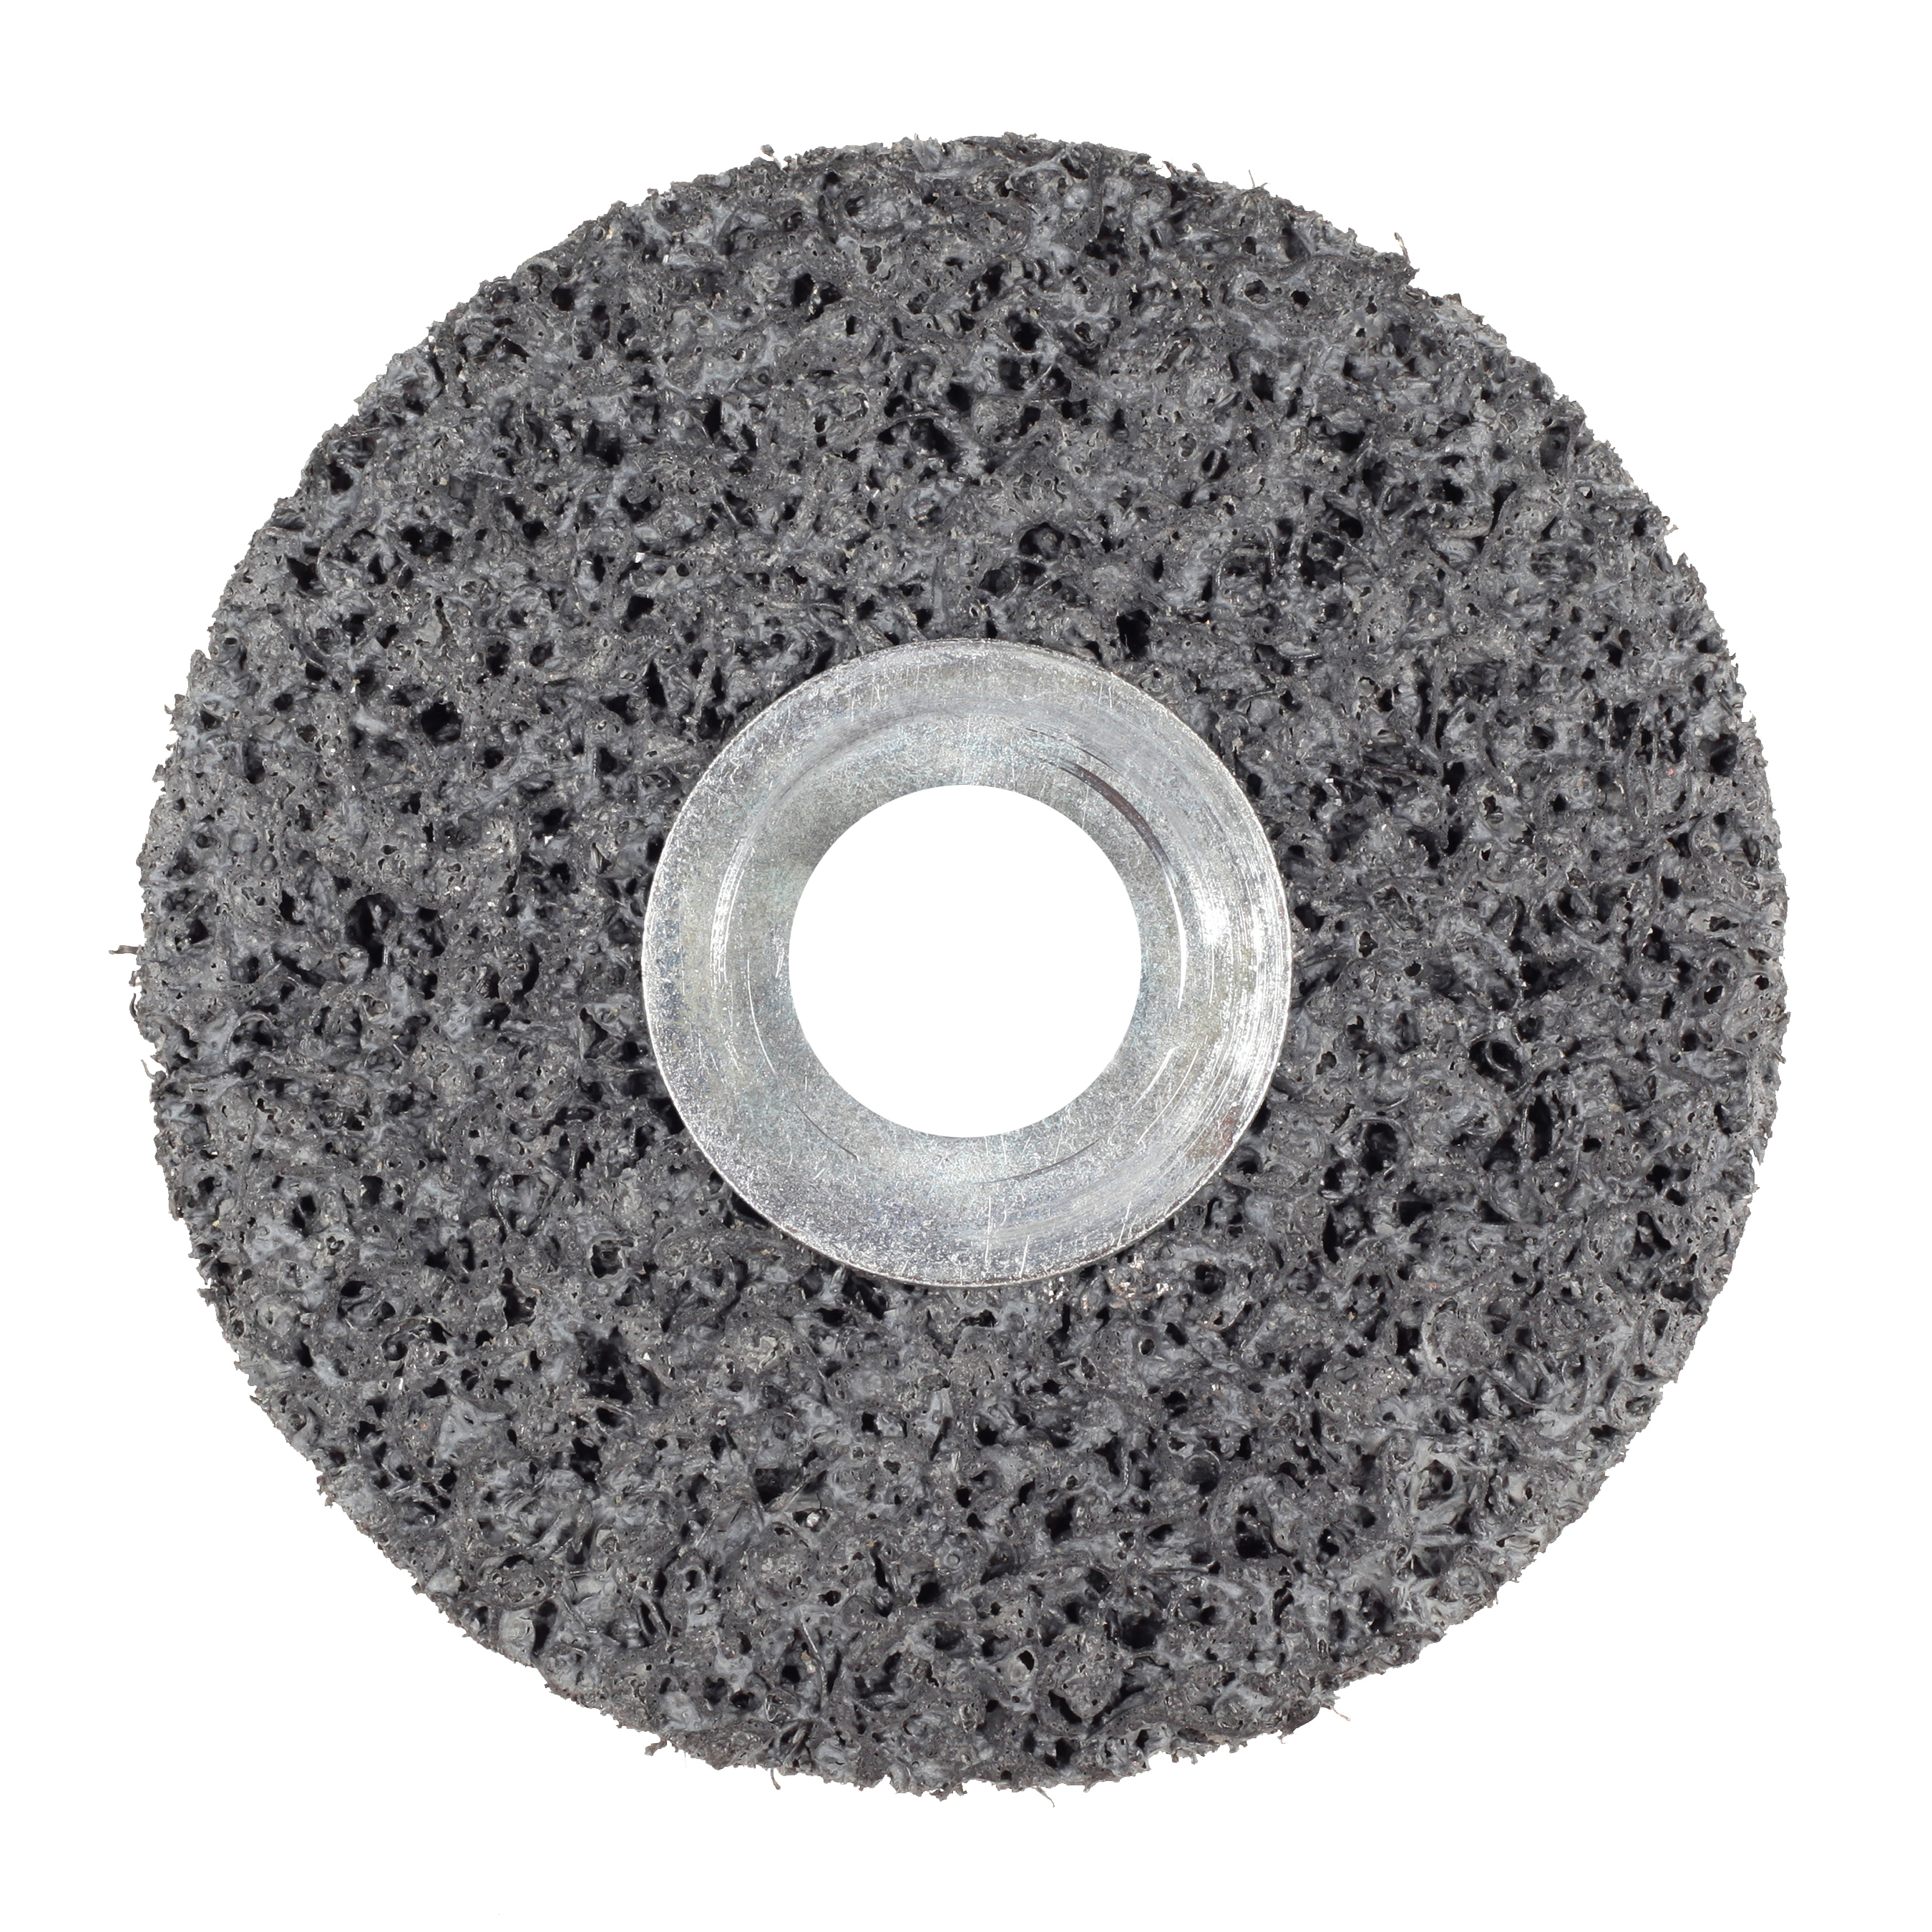 Scotch-Brite™ 048011-01012 CS-UW Clean and Strip Unitized Wheel, 3 in Dia Wheel, 1/4 in Center Hole, 1 in W Face, Extra Coarse Grade, Silicon Carbide Abrasive